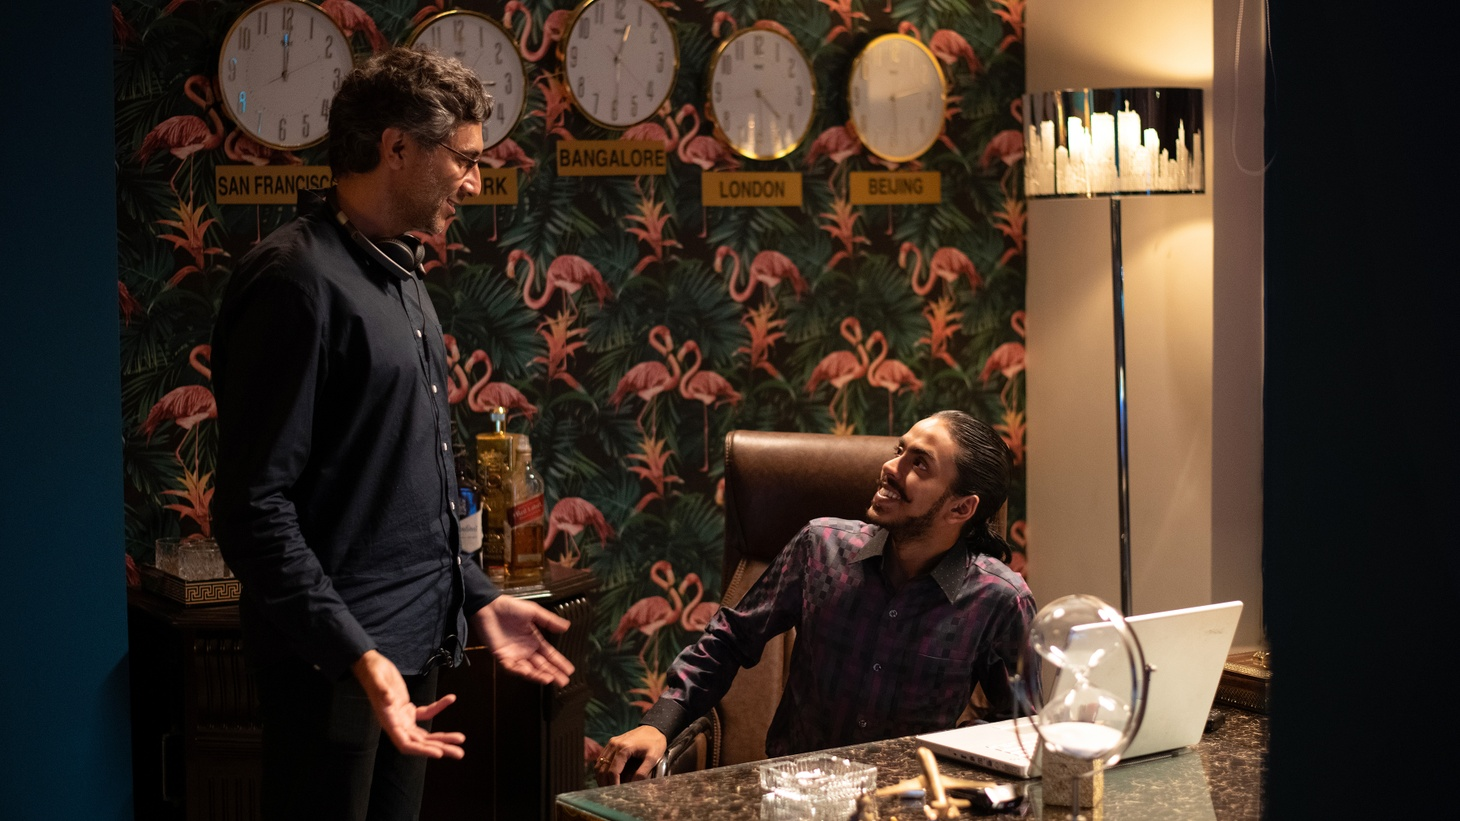 """Director Ramin Bahrani and actor Adarsh Gourav on the set of """"The White Tiger."""" The new film is based on the novel of the same name by Bahrani's long-time friend, Aravind Adiga."""